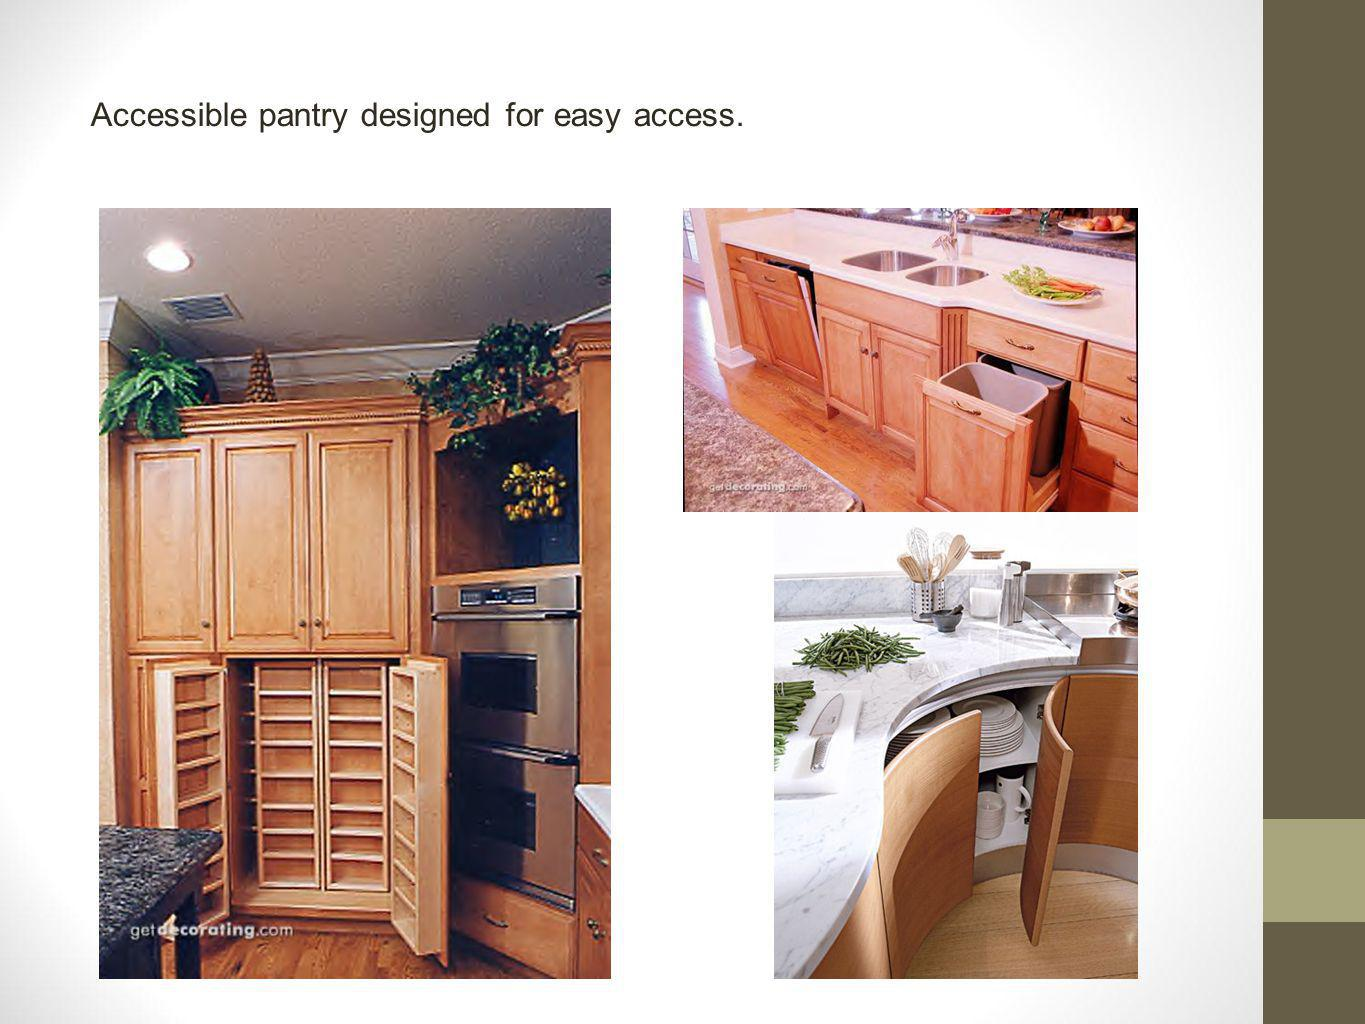 Accessible pantry designed for easy access.